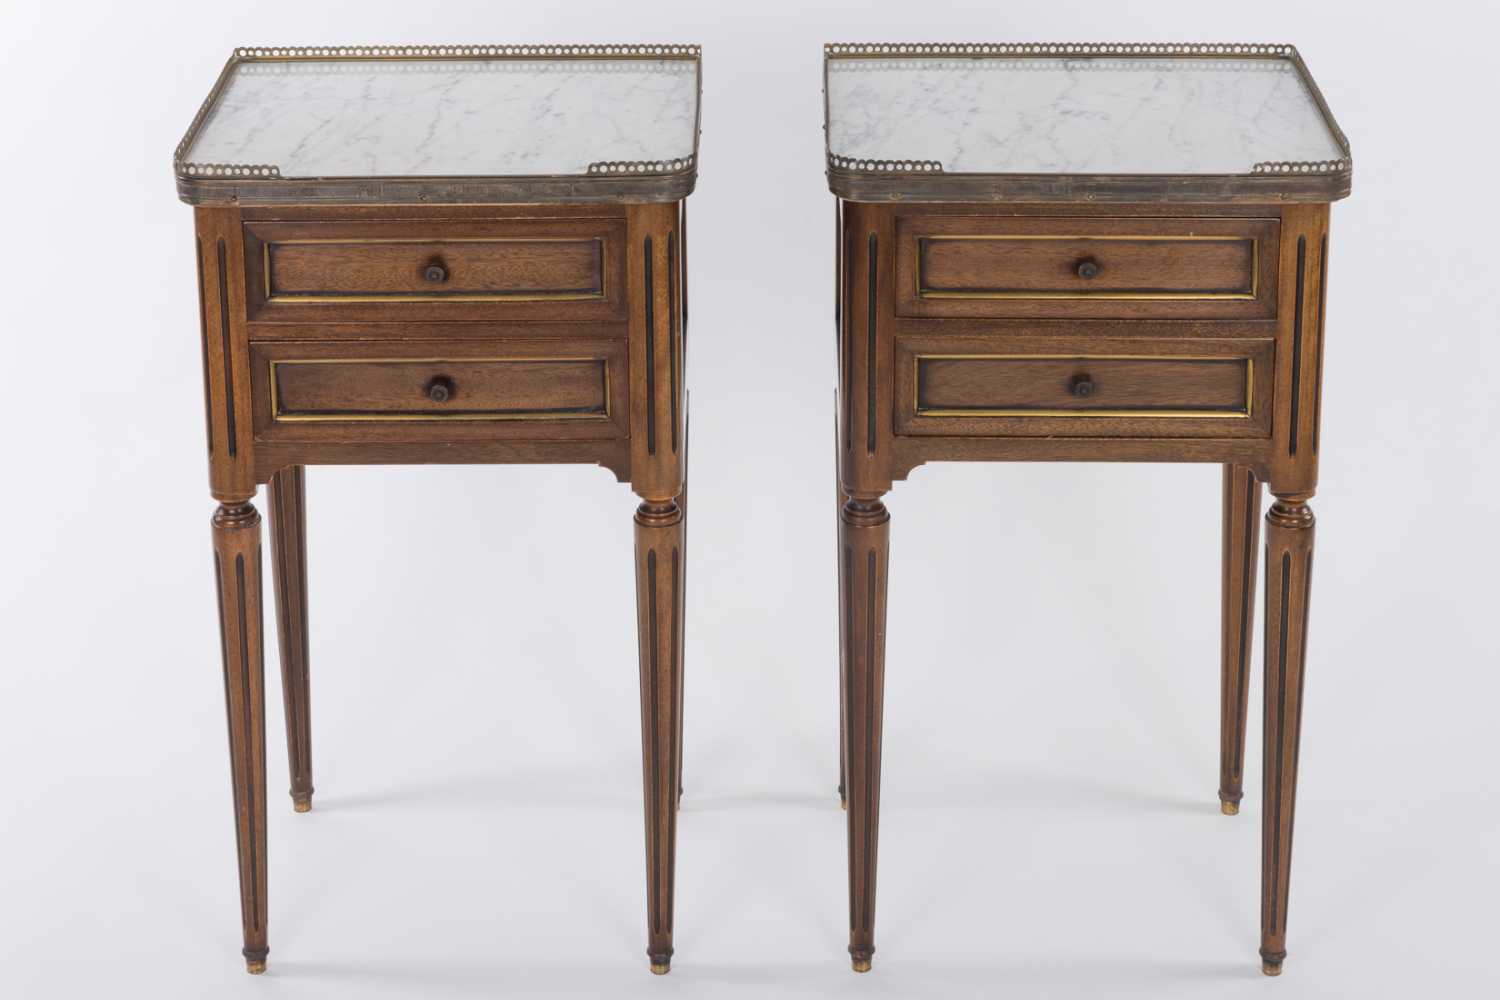 Pair of Louis style bedside tables